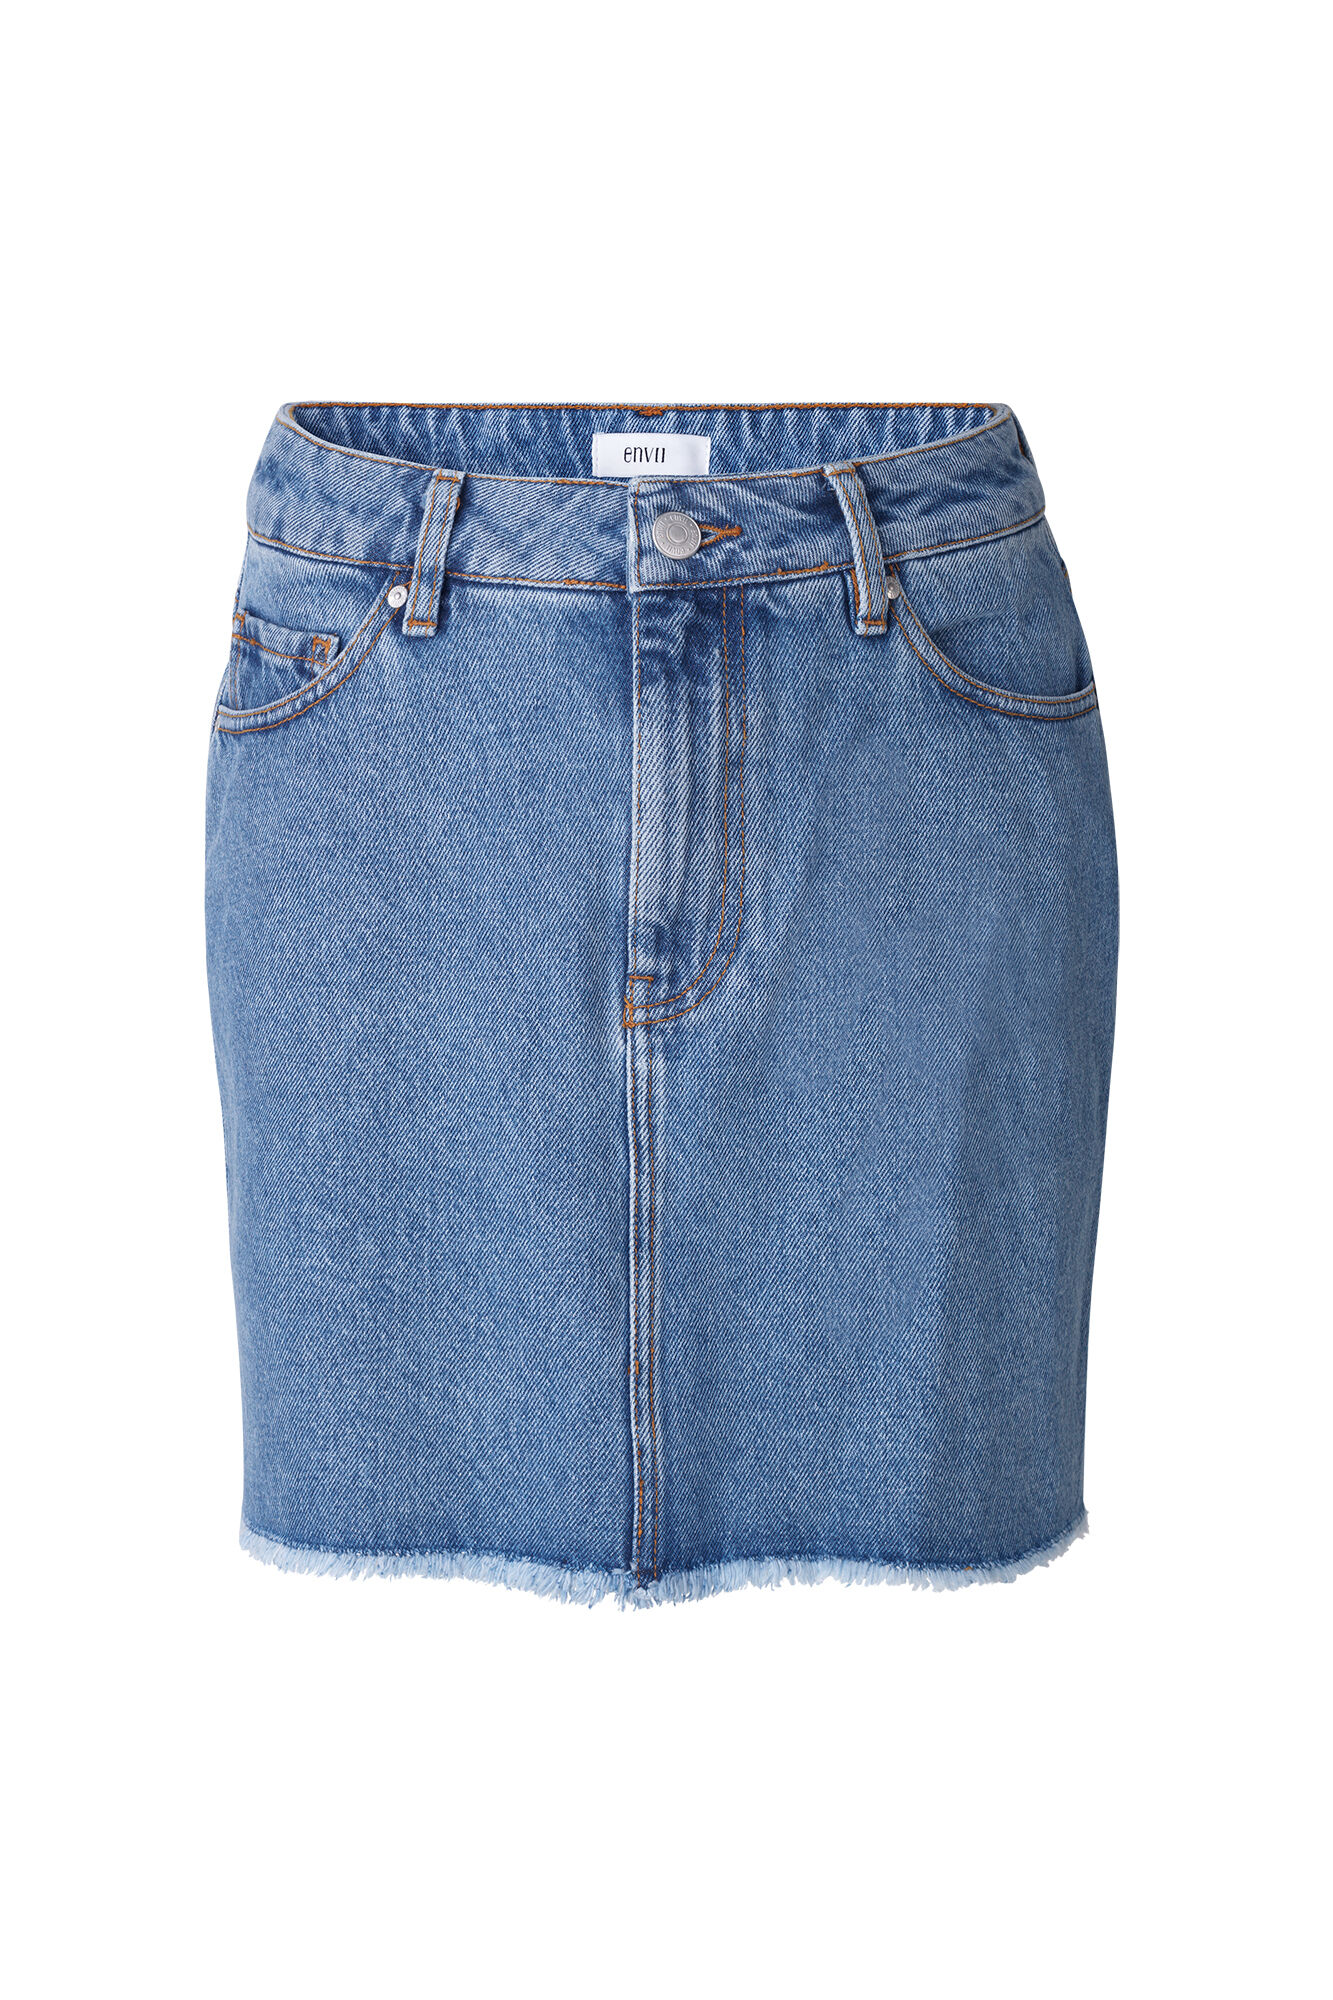 ENCOOKIE DENIM SKIRT 6524, 90S MID BLUE